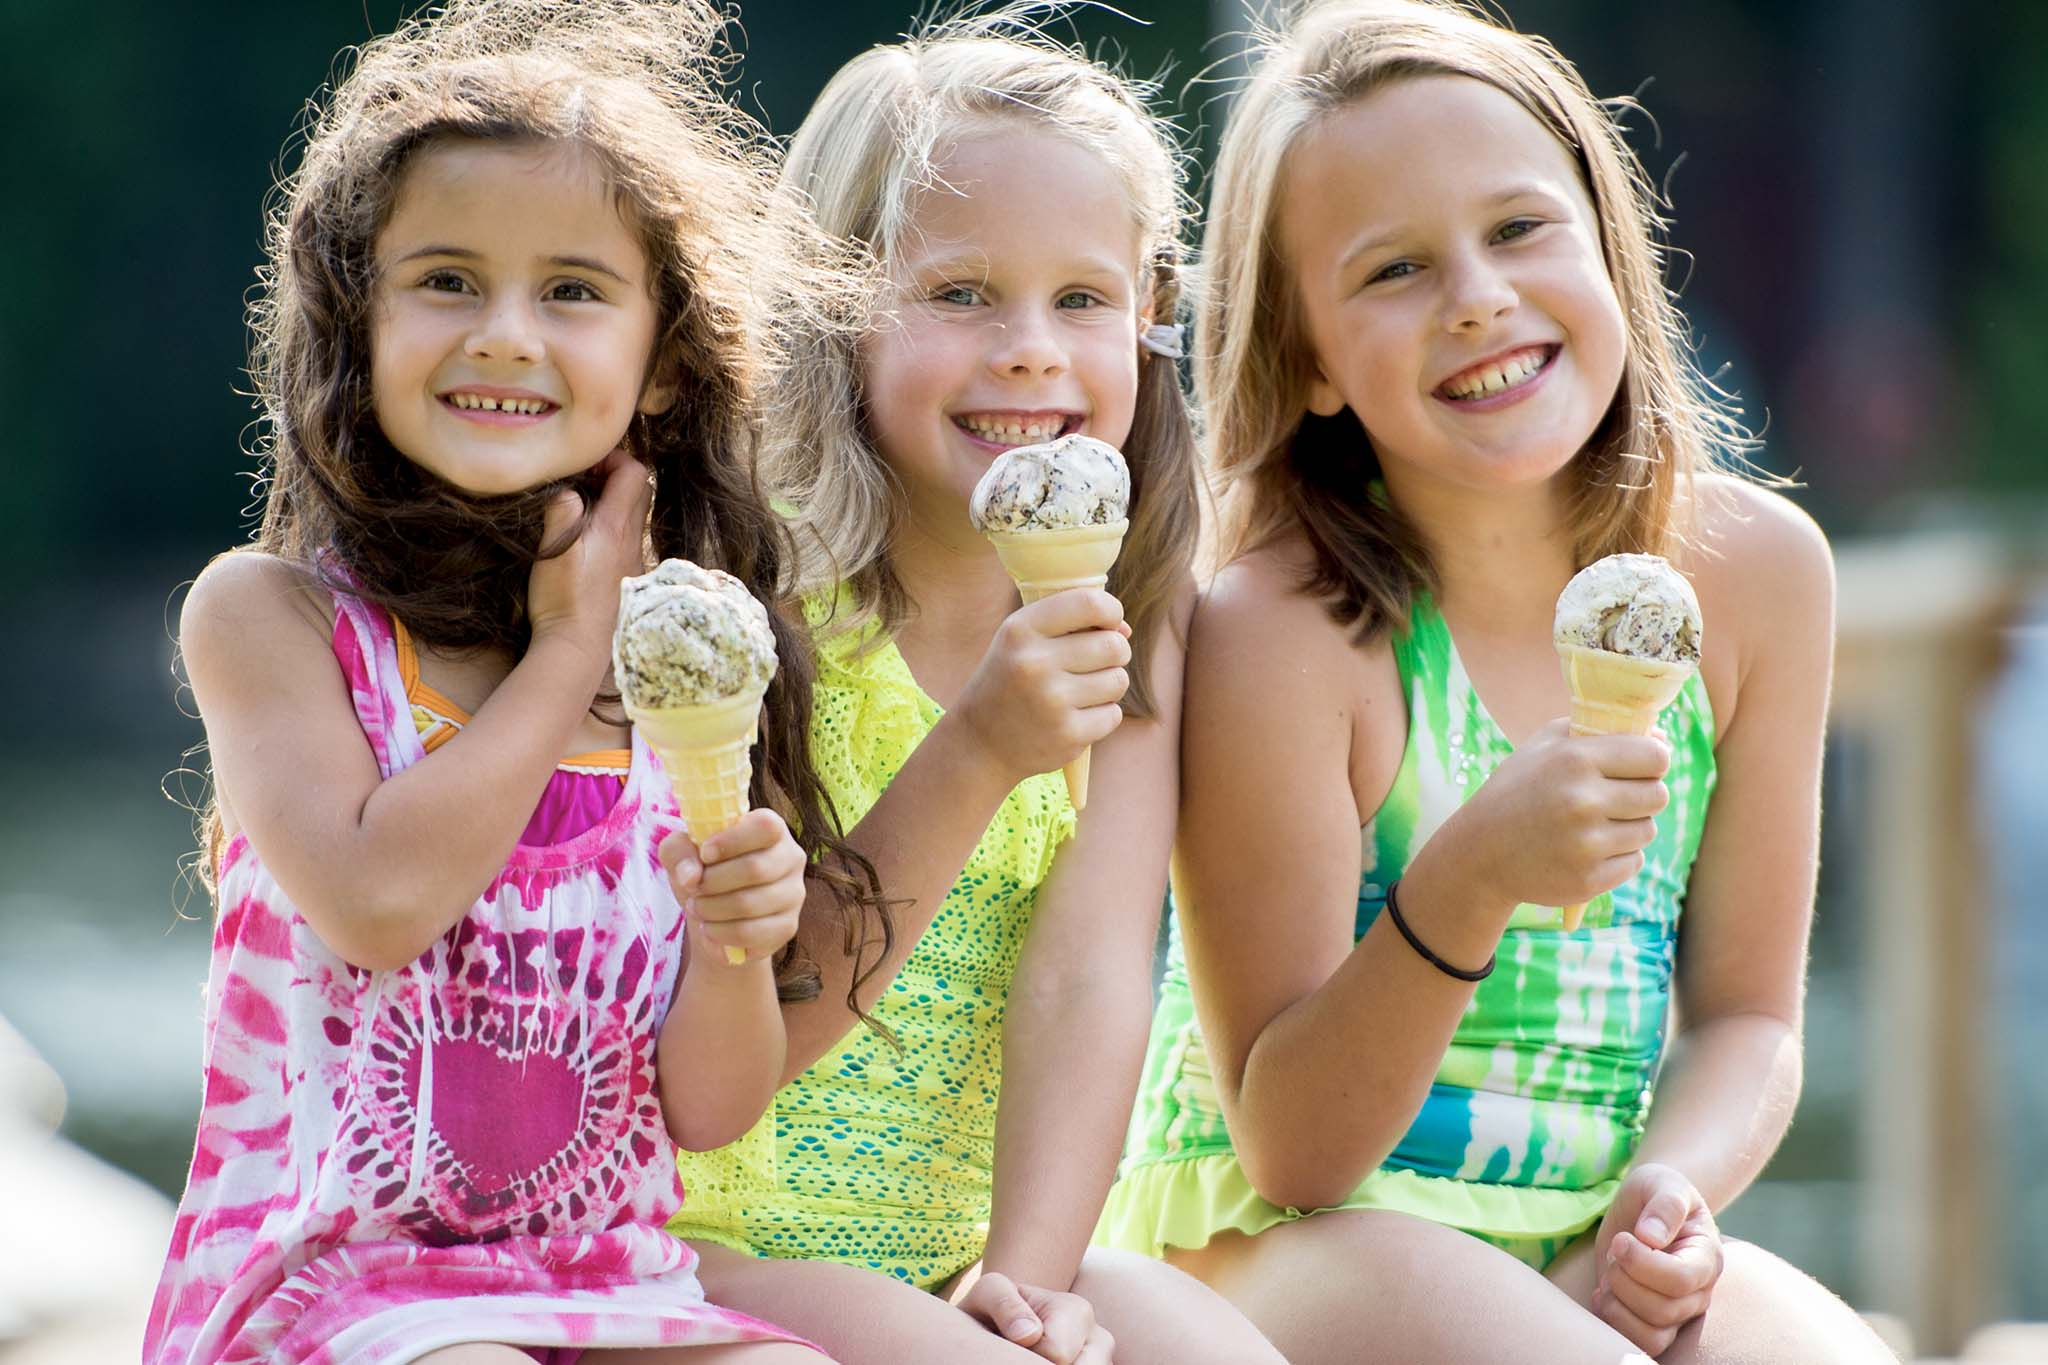 3 young girls eating ice cream at the pool